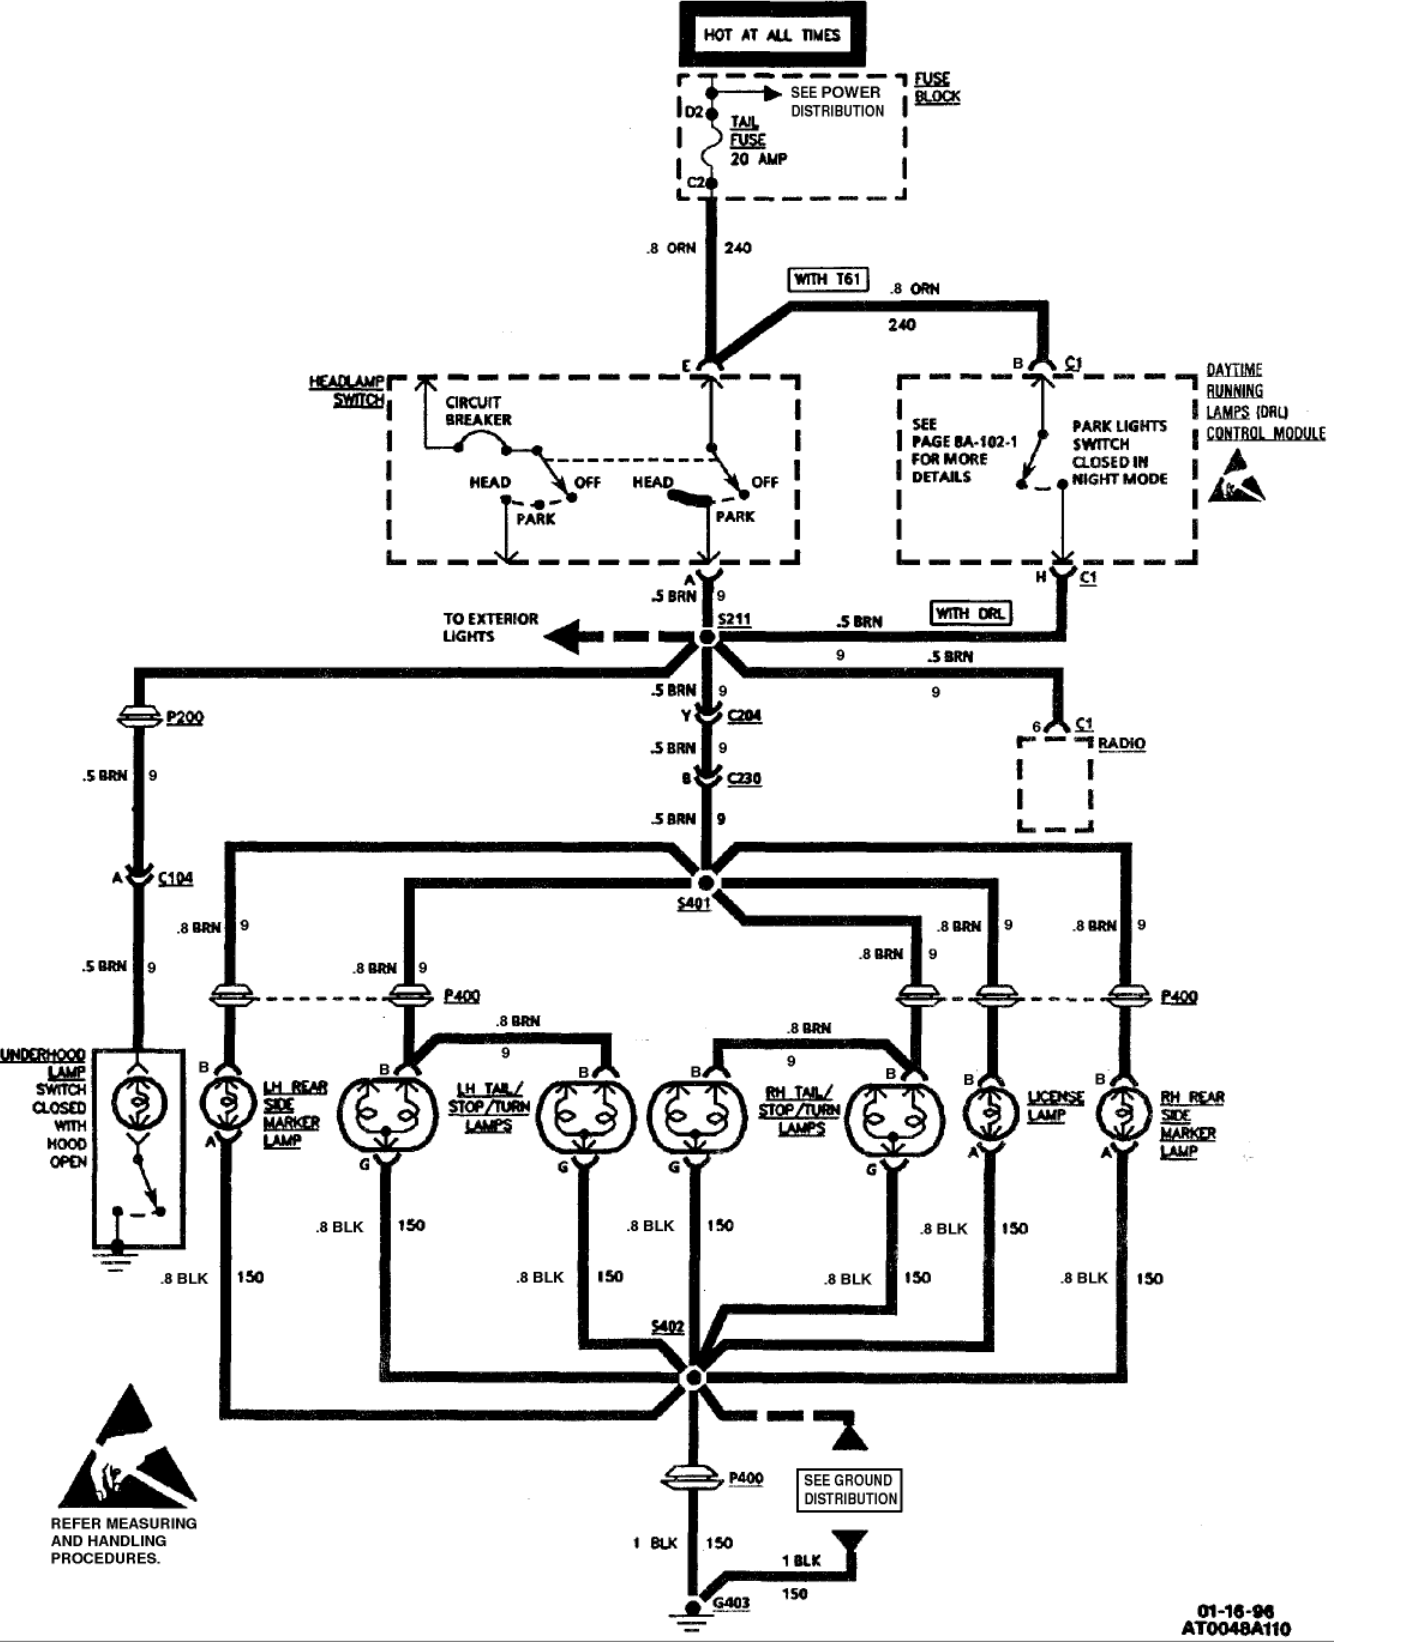 Diagram Wiring Diagram Radio For 1996 Oldsmobile Full Version Hd Quality 1996 Oldsmobile Schematiccorp2j Artemideverde It